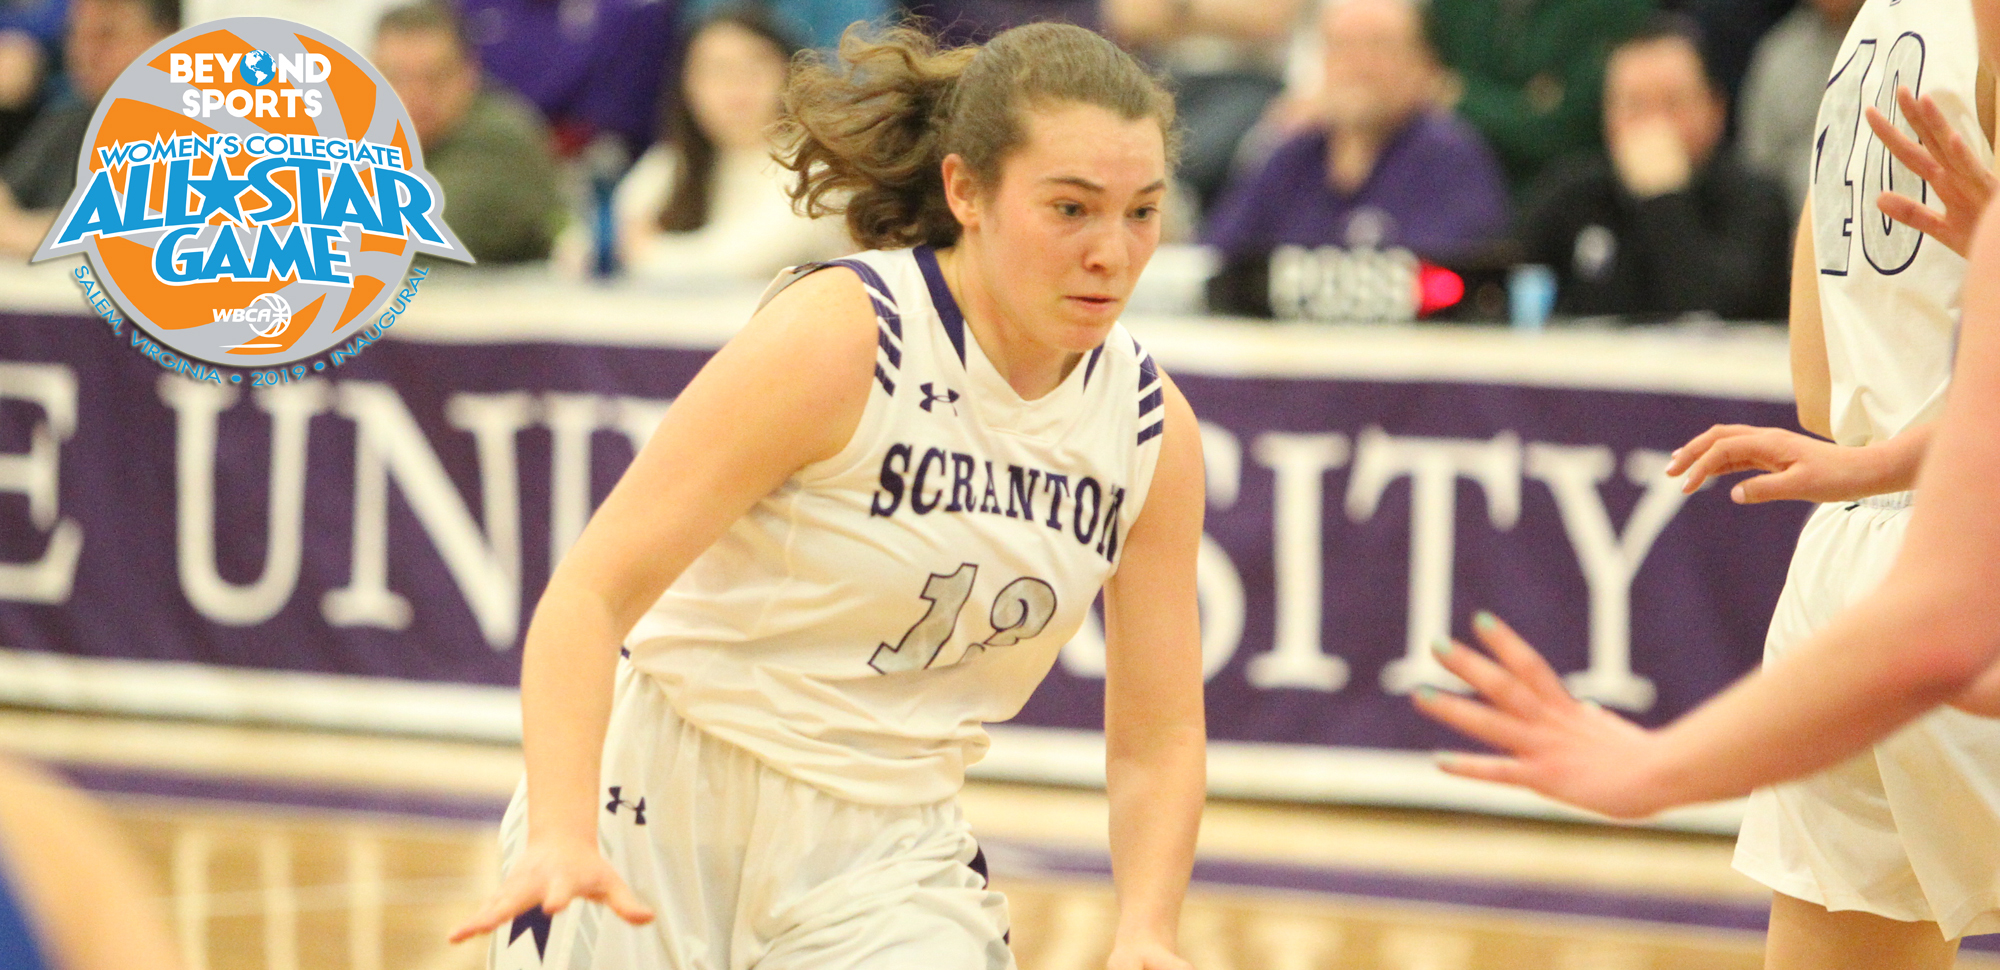 Senior guard Bridgette Mann was selected to play in the inaugural Beyond Sports Division III All-Star Game presented by the WBCA on Wednesday.